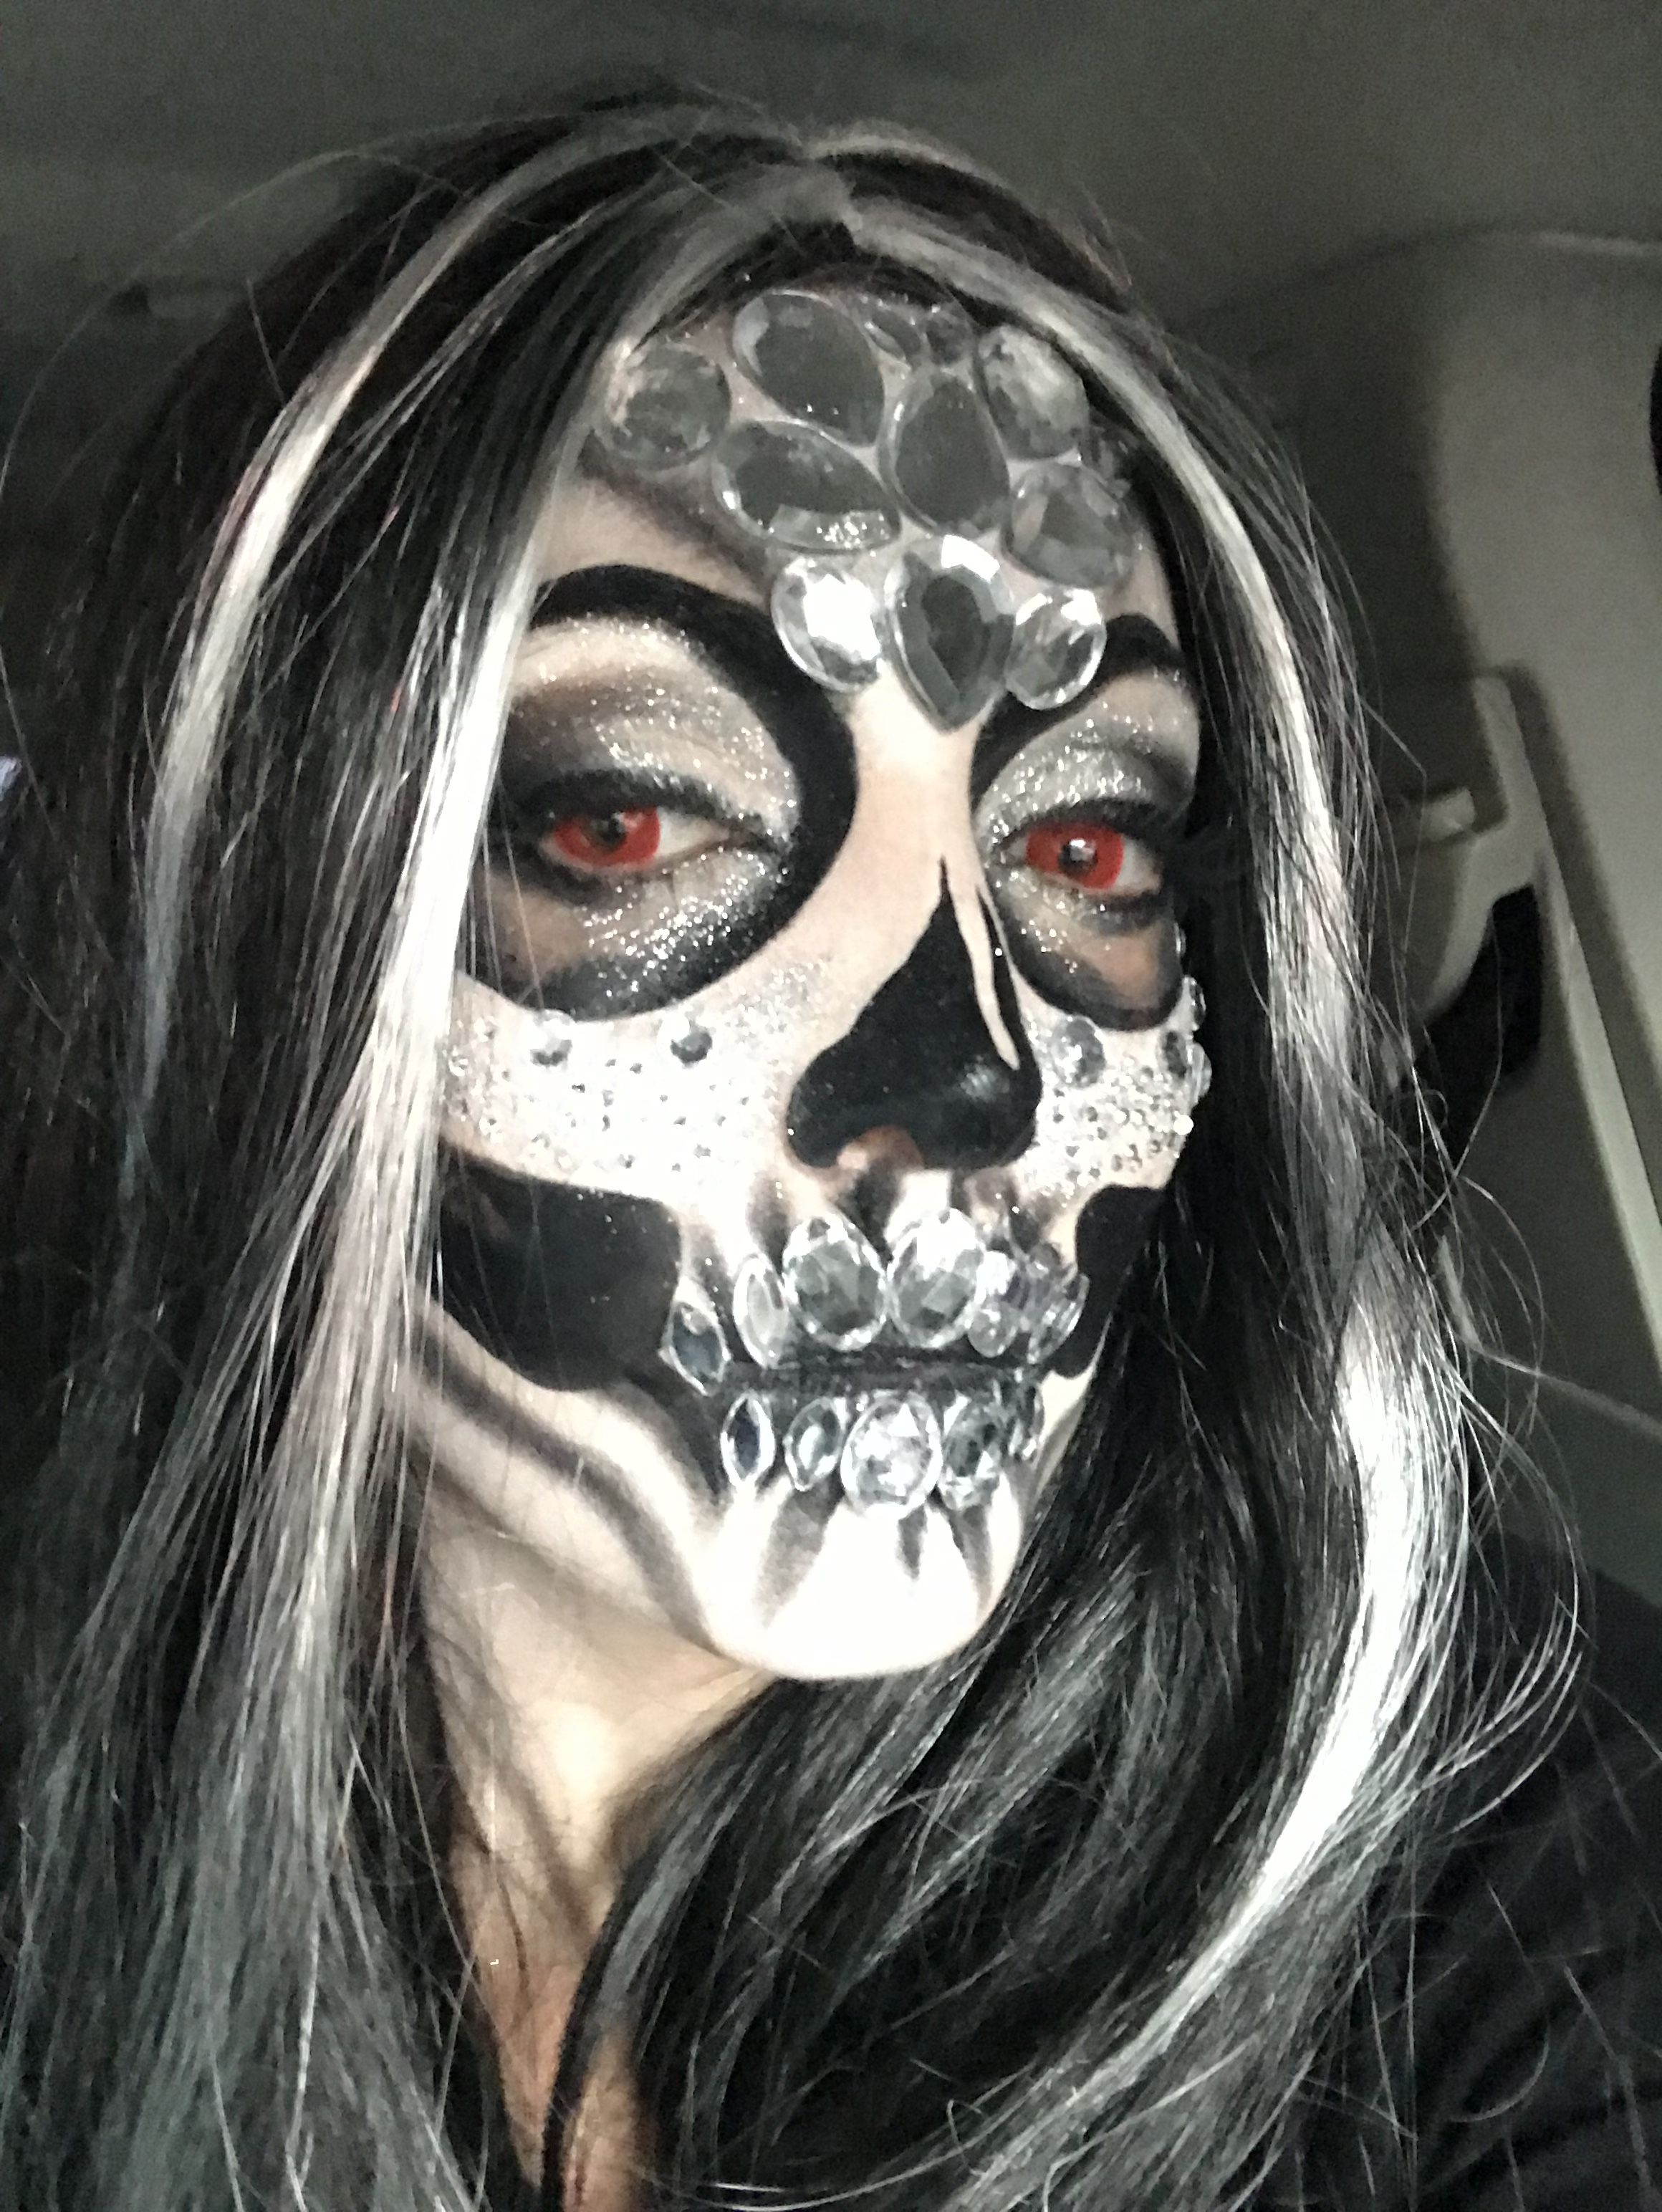 #halloween #fashion #skull #glam #glamorous #art #makeup